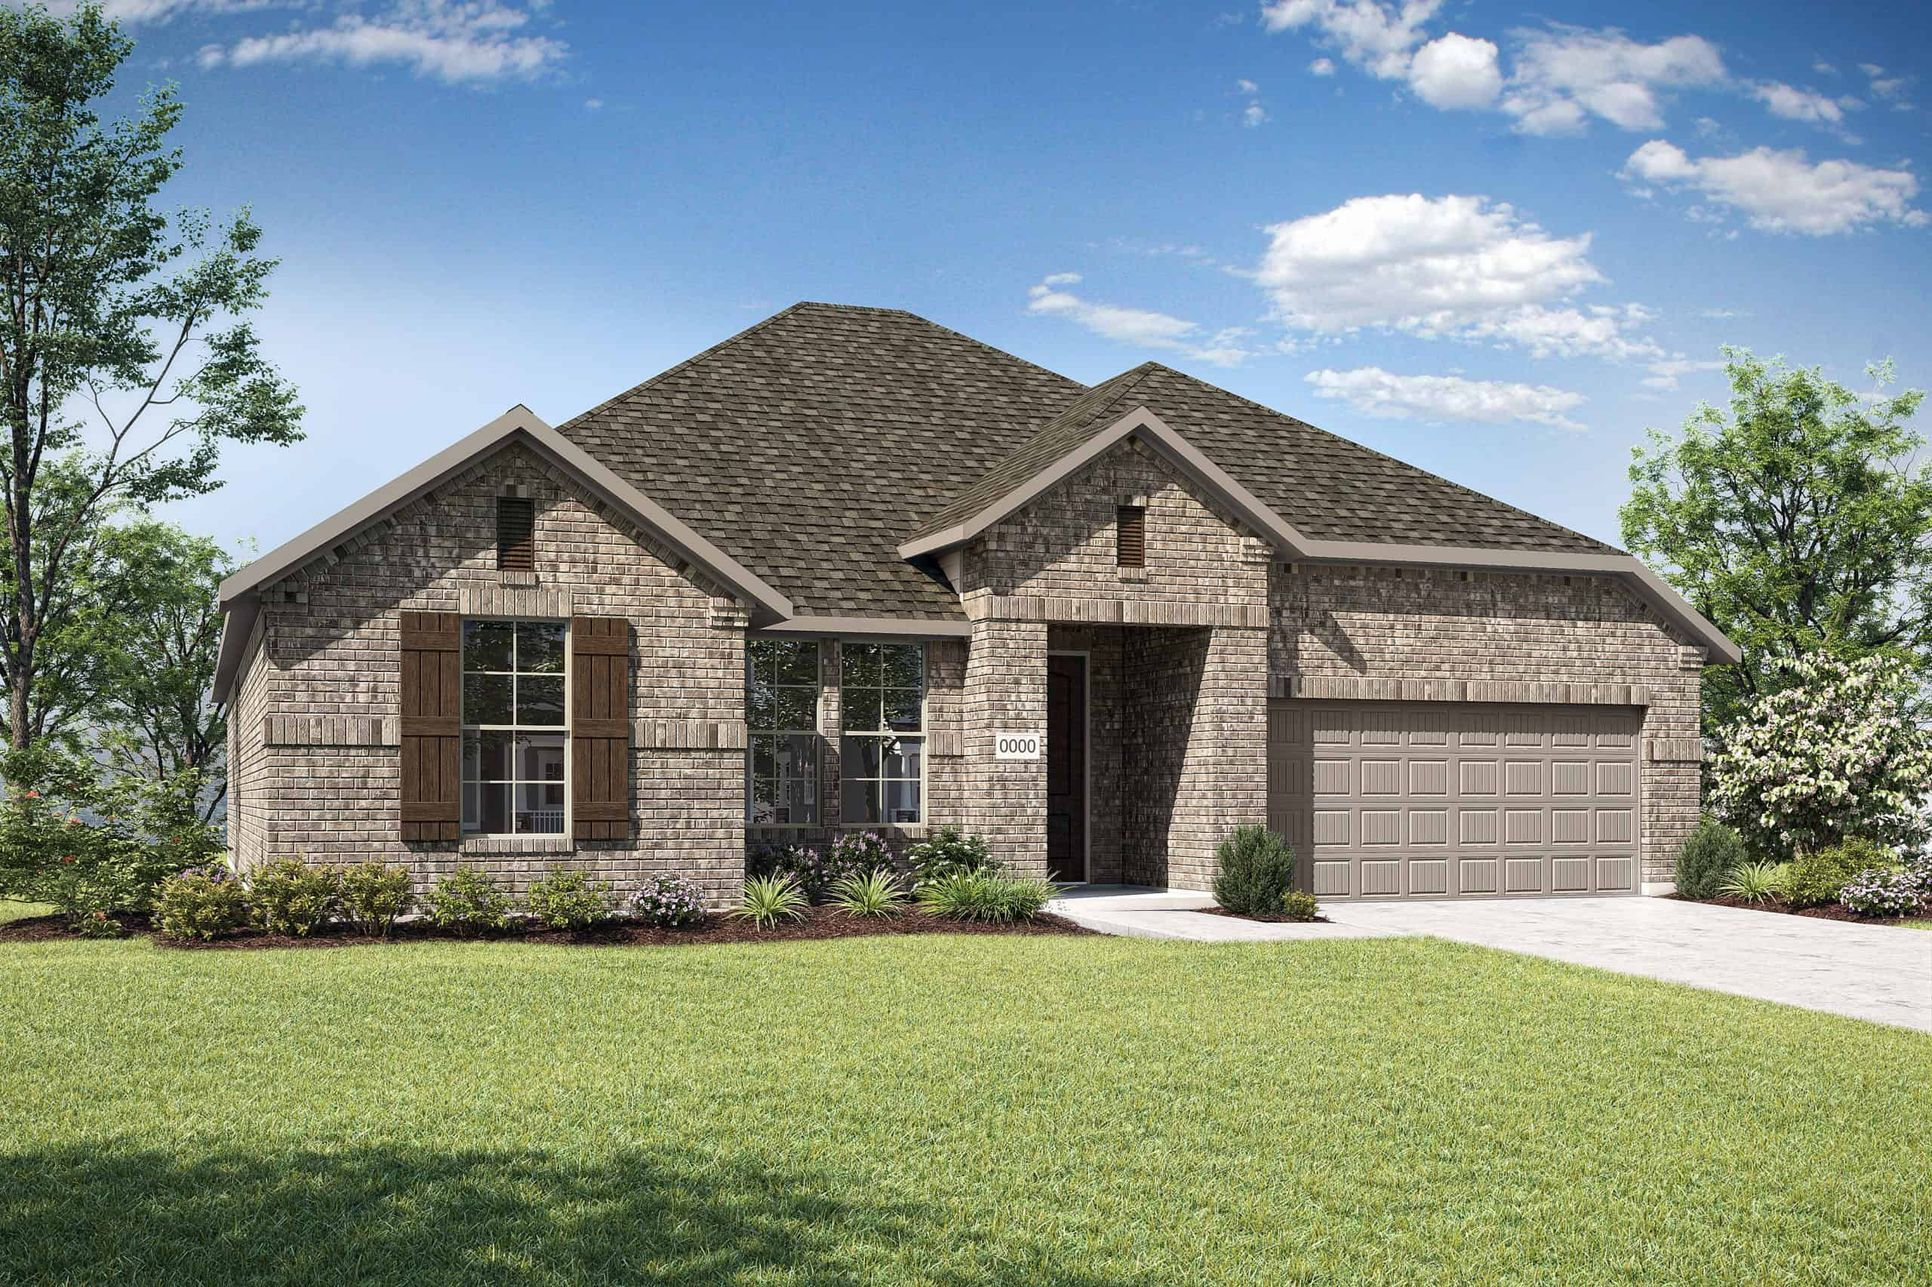 Elevation B:Elevation B is a single story full brick traditional home design with shutters on the front window.